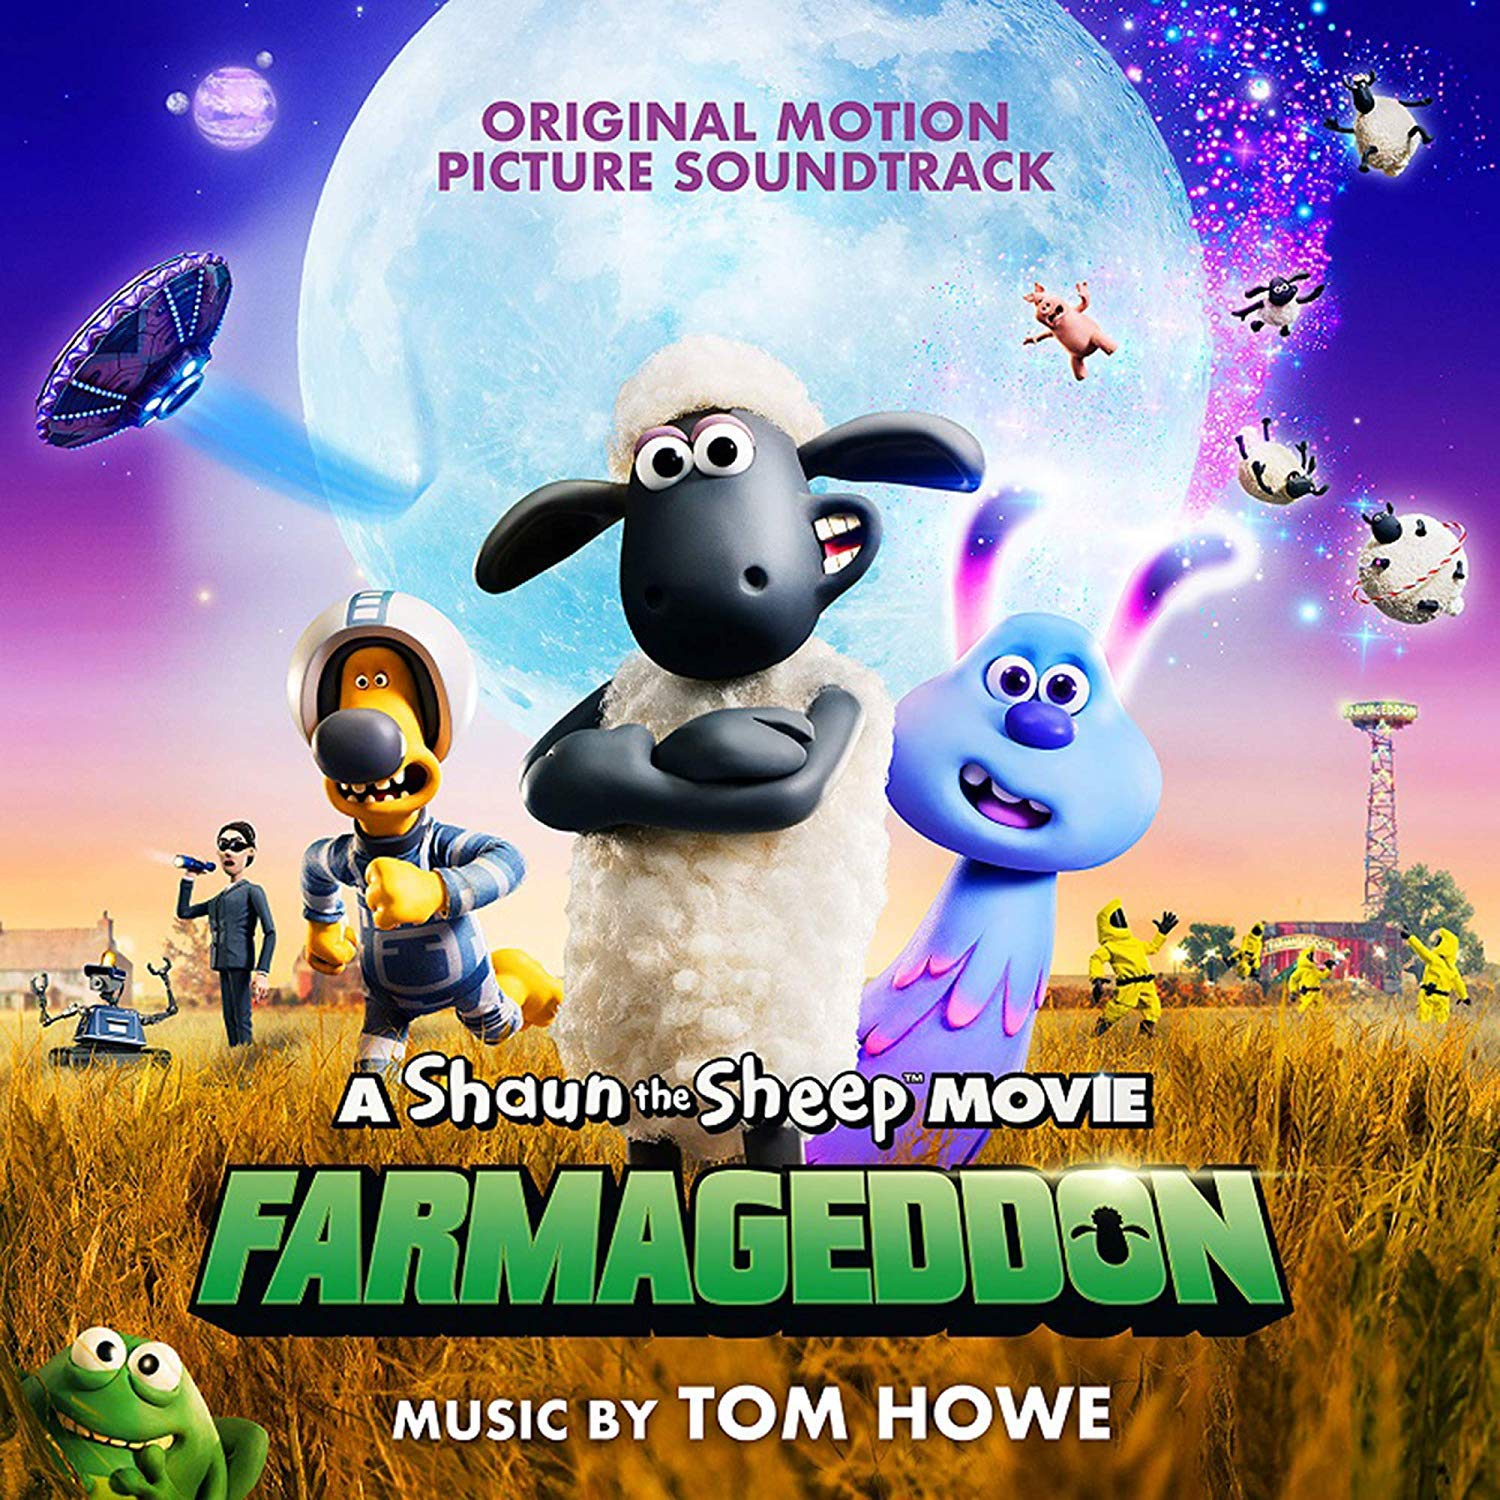 Shaun the sheep movie (A) - Farmageddon (2019)